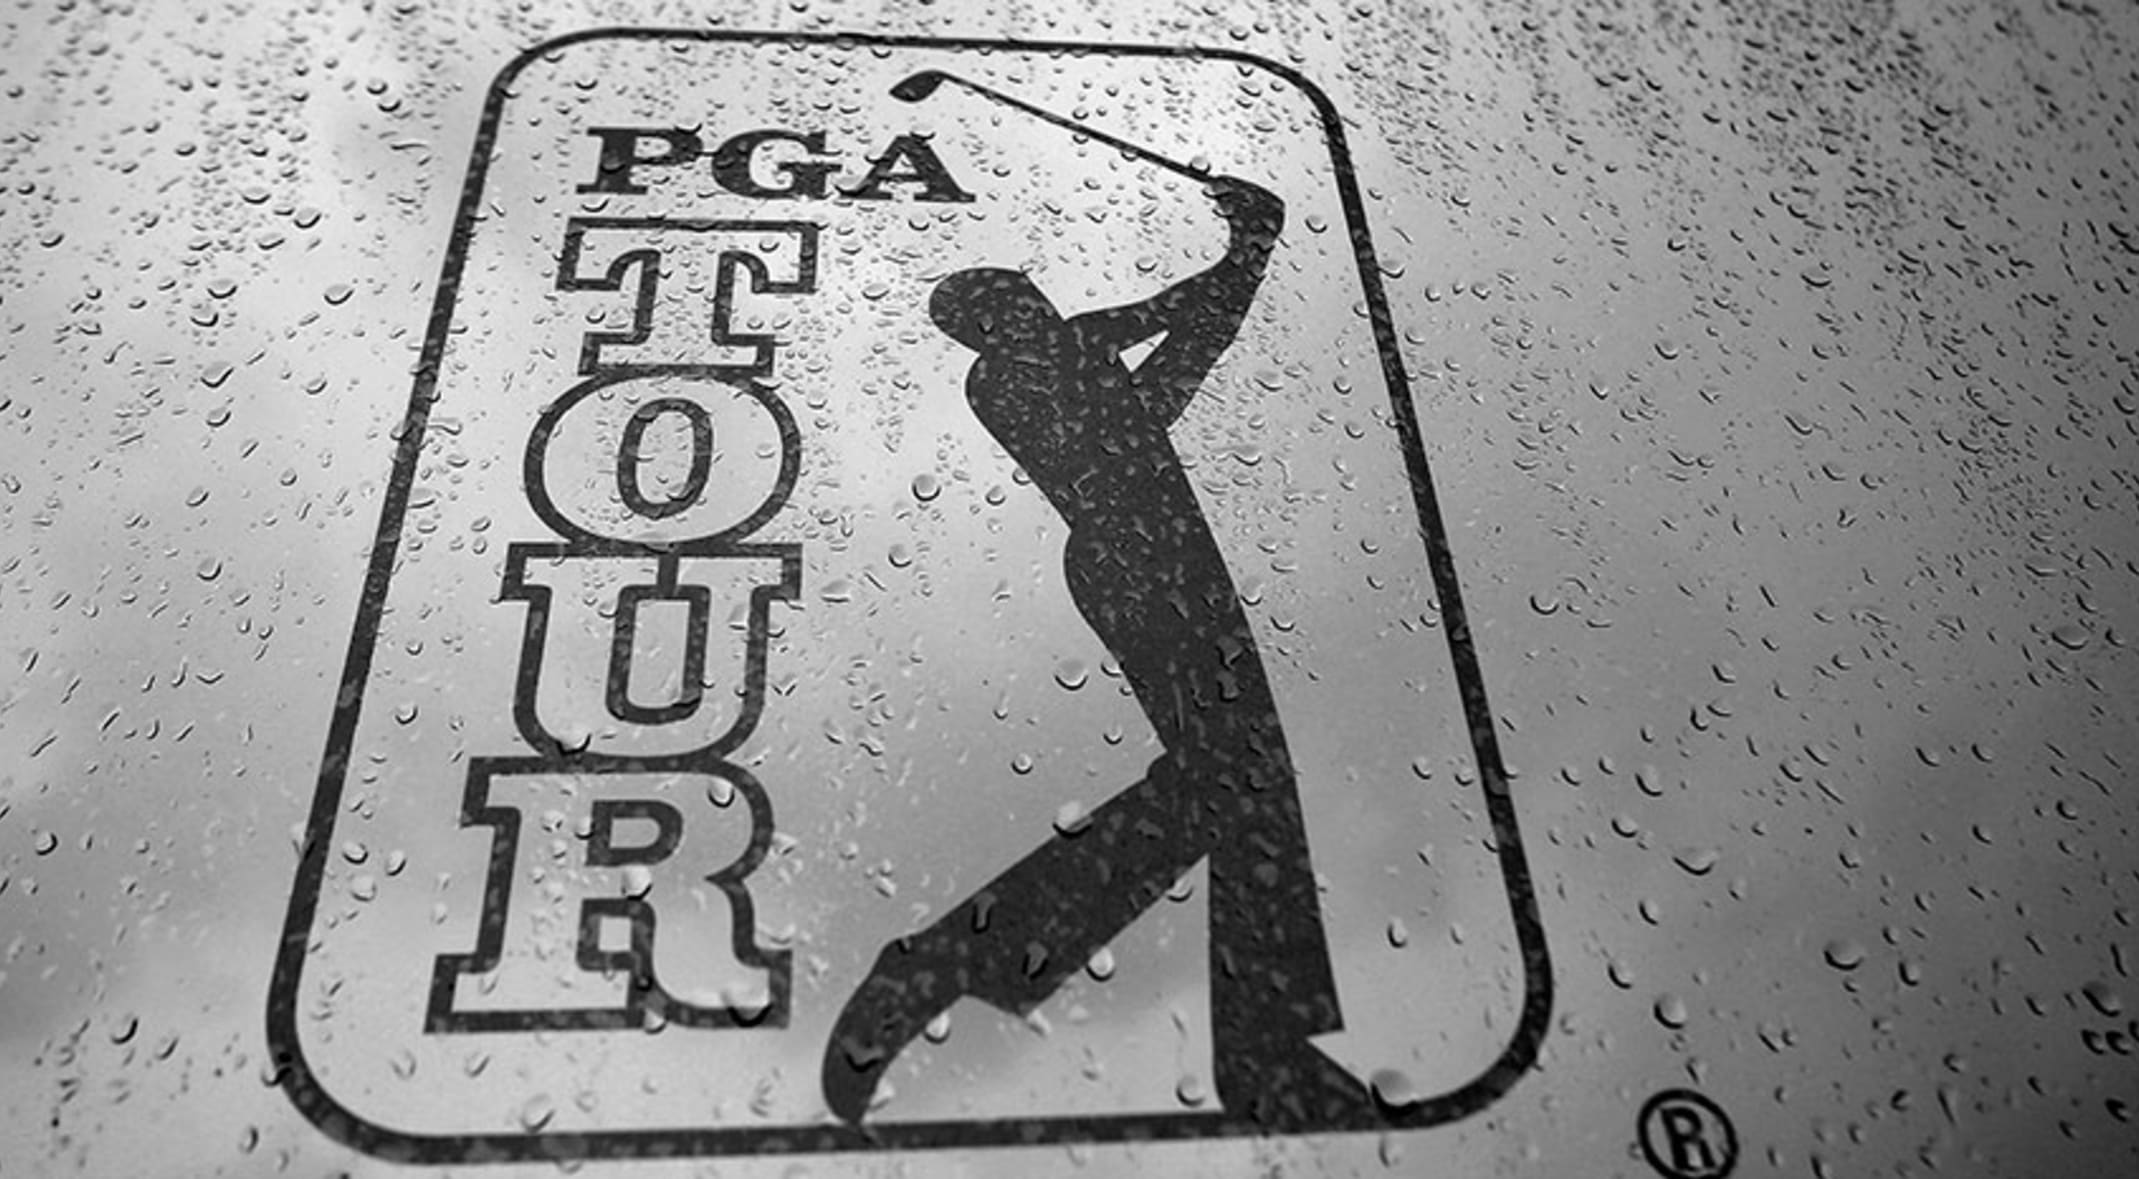 have a question about one of the pga tours professional tours chances are